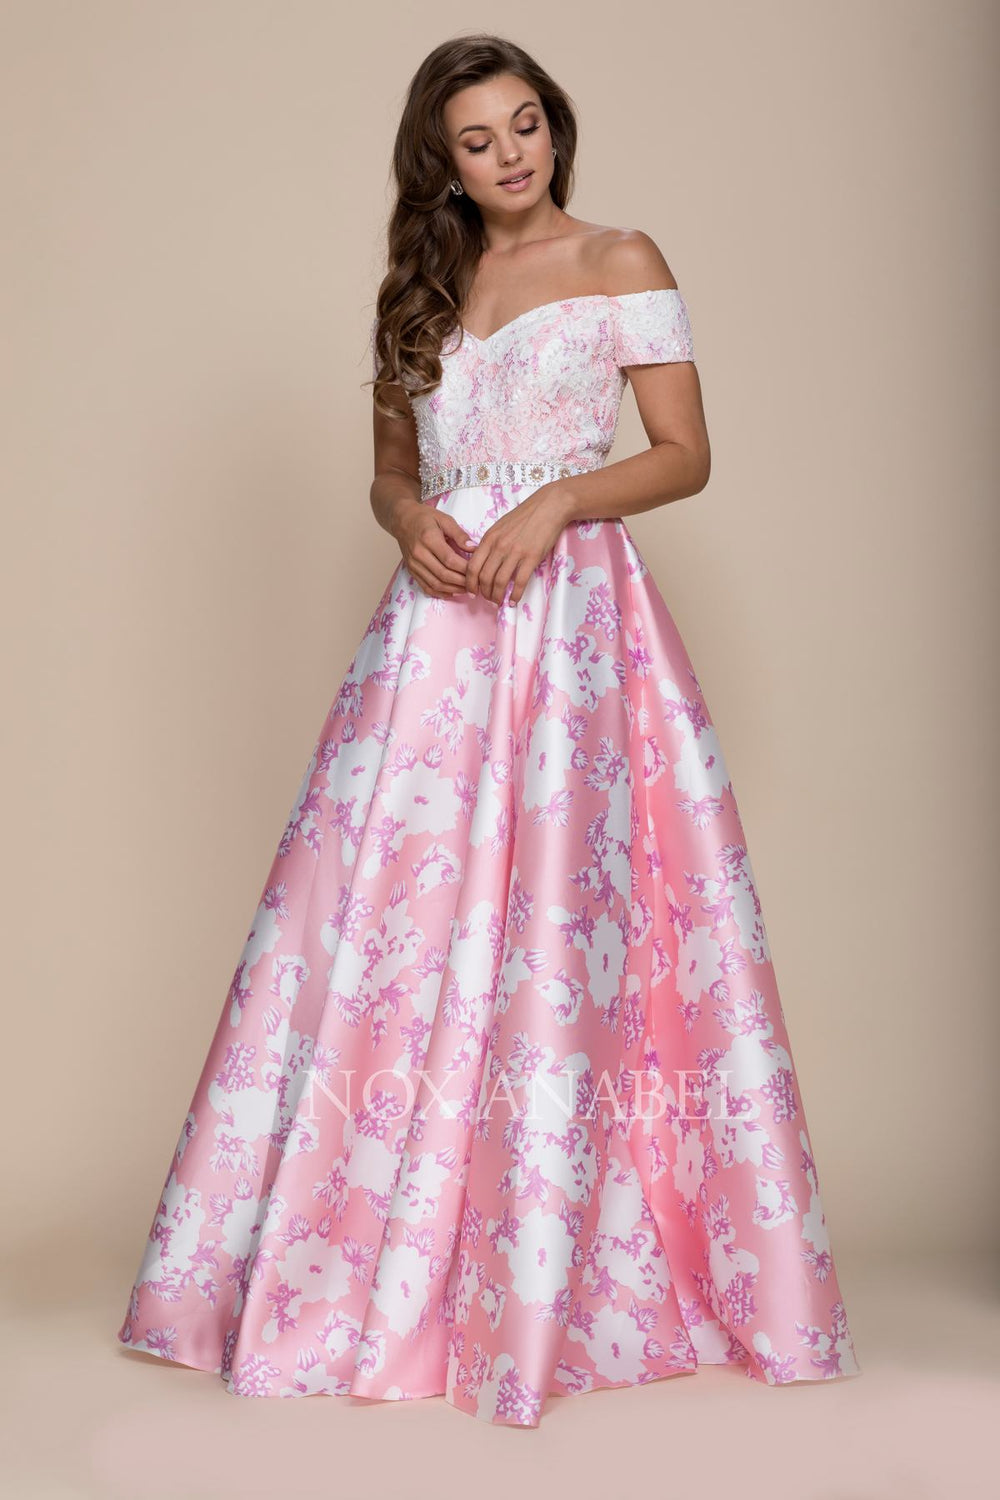 OFF SHOULDER SWEETHEART NECKLINE FLORAL A-LINE GOWN 8301 BY NARIANNA